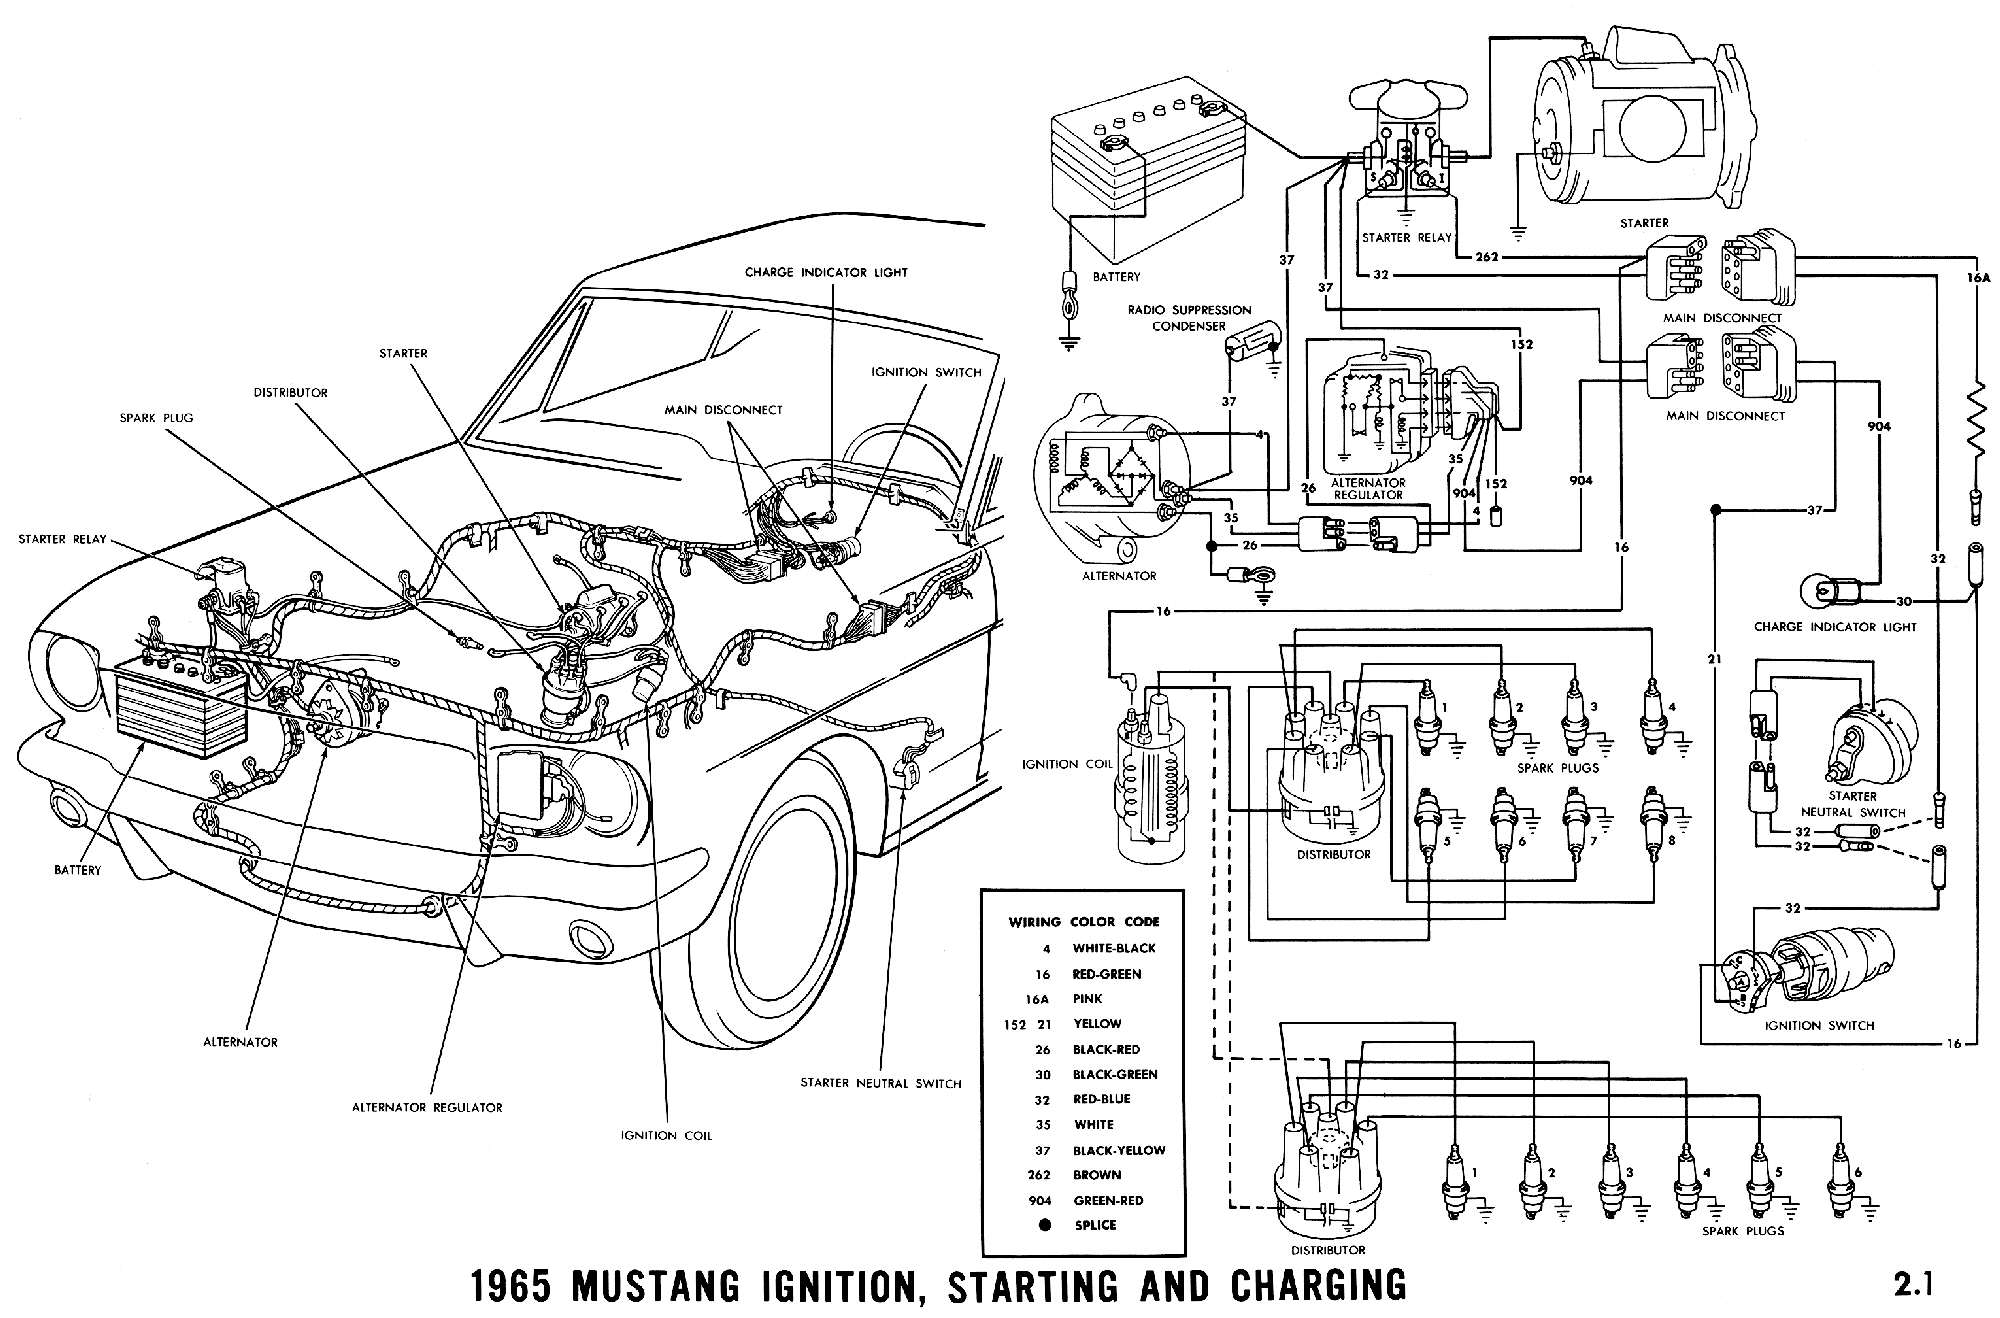 1965c 1965 mustang wiring diagrams average joe restoration 1966 mustang fuse box diagram at bakdesigns.co